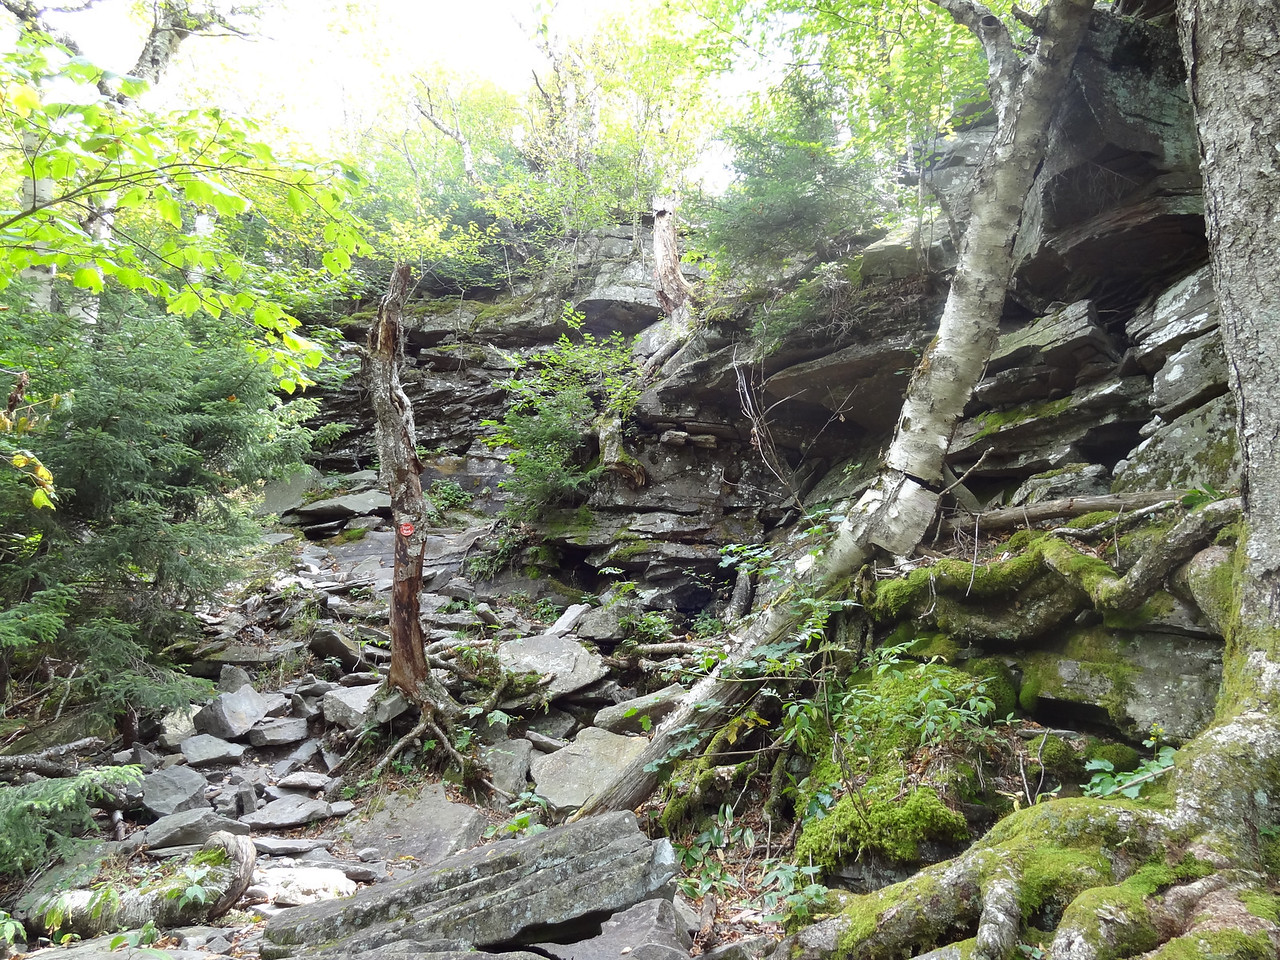 Again, another steep section.